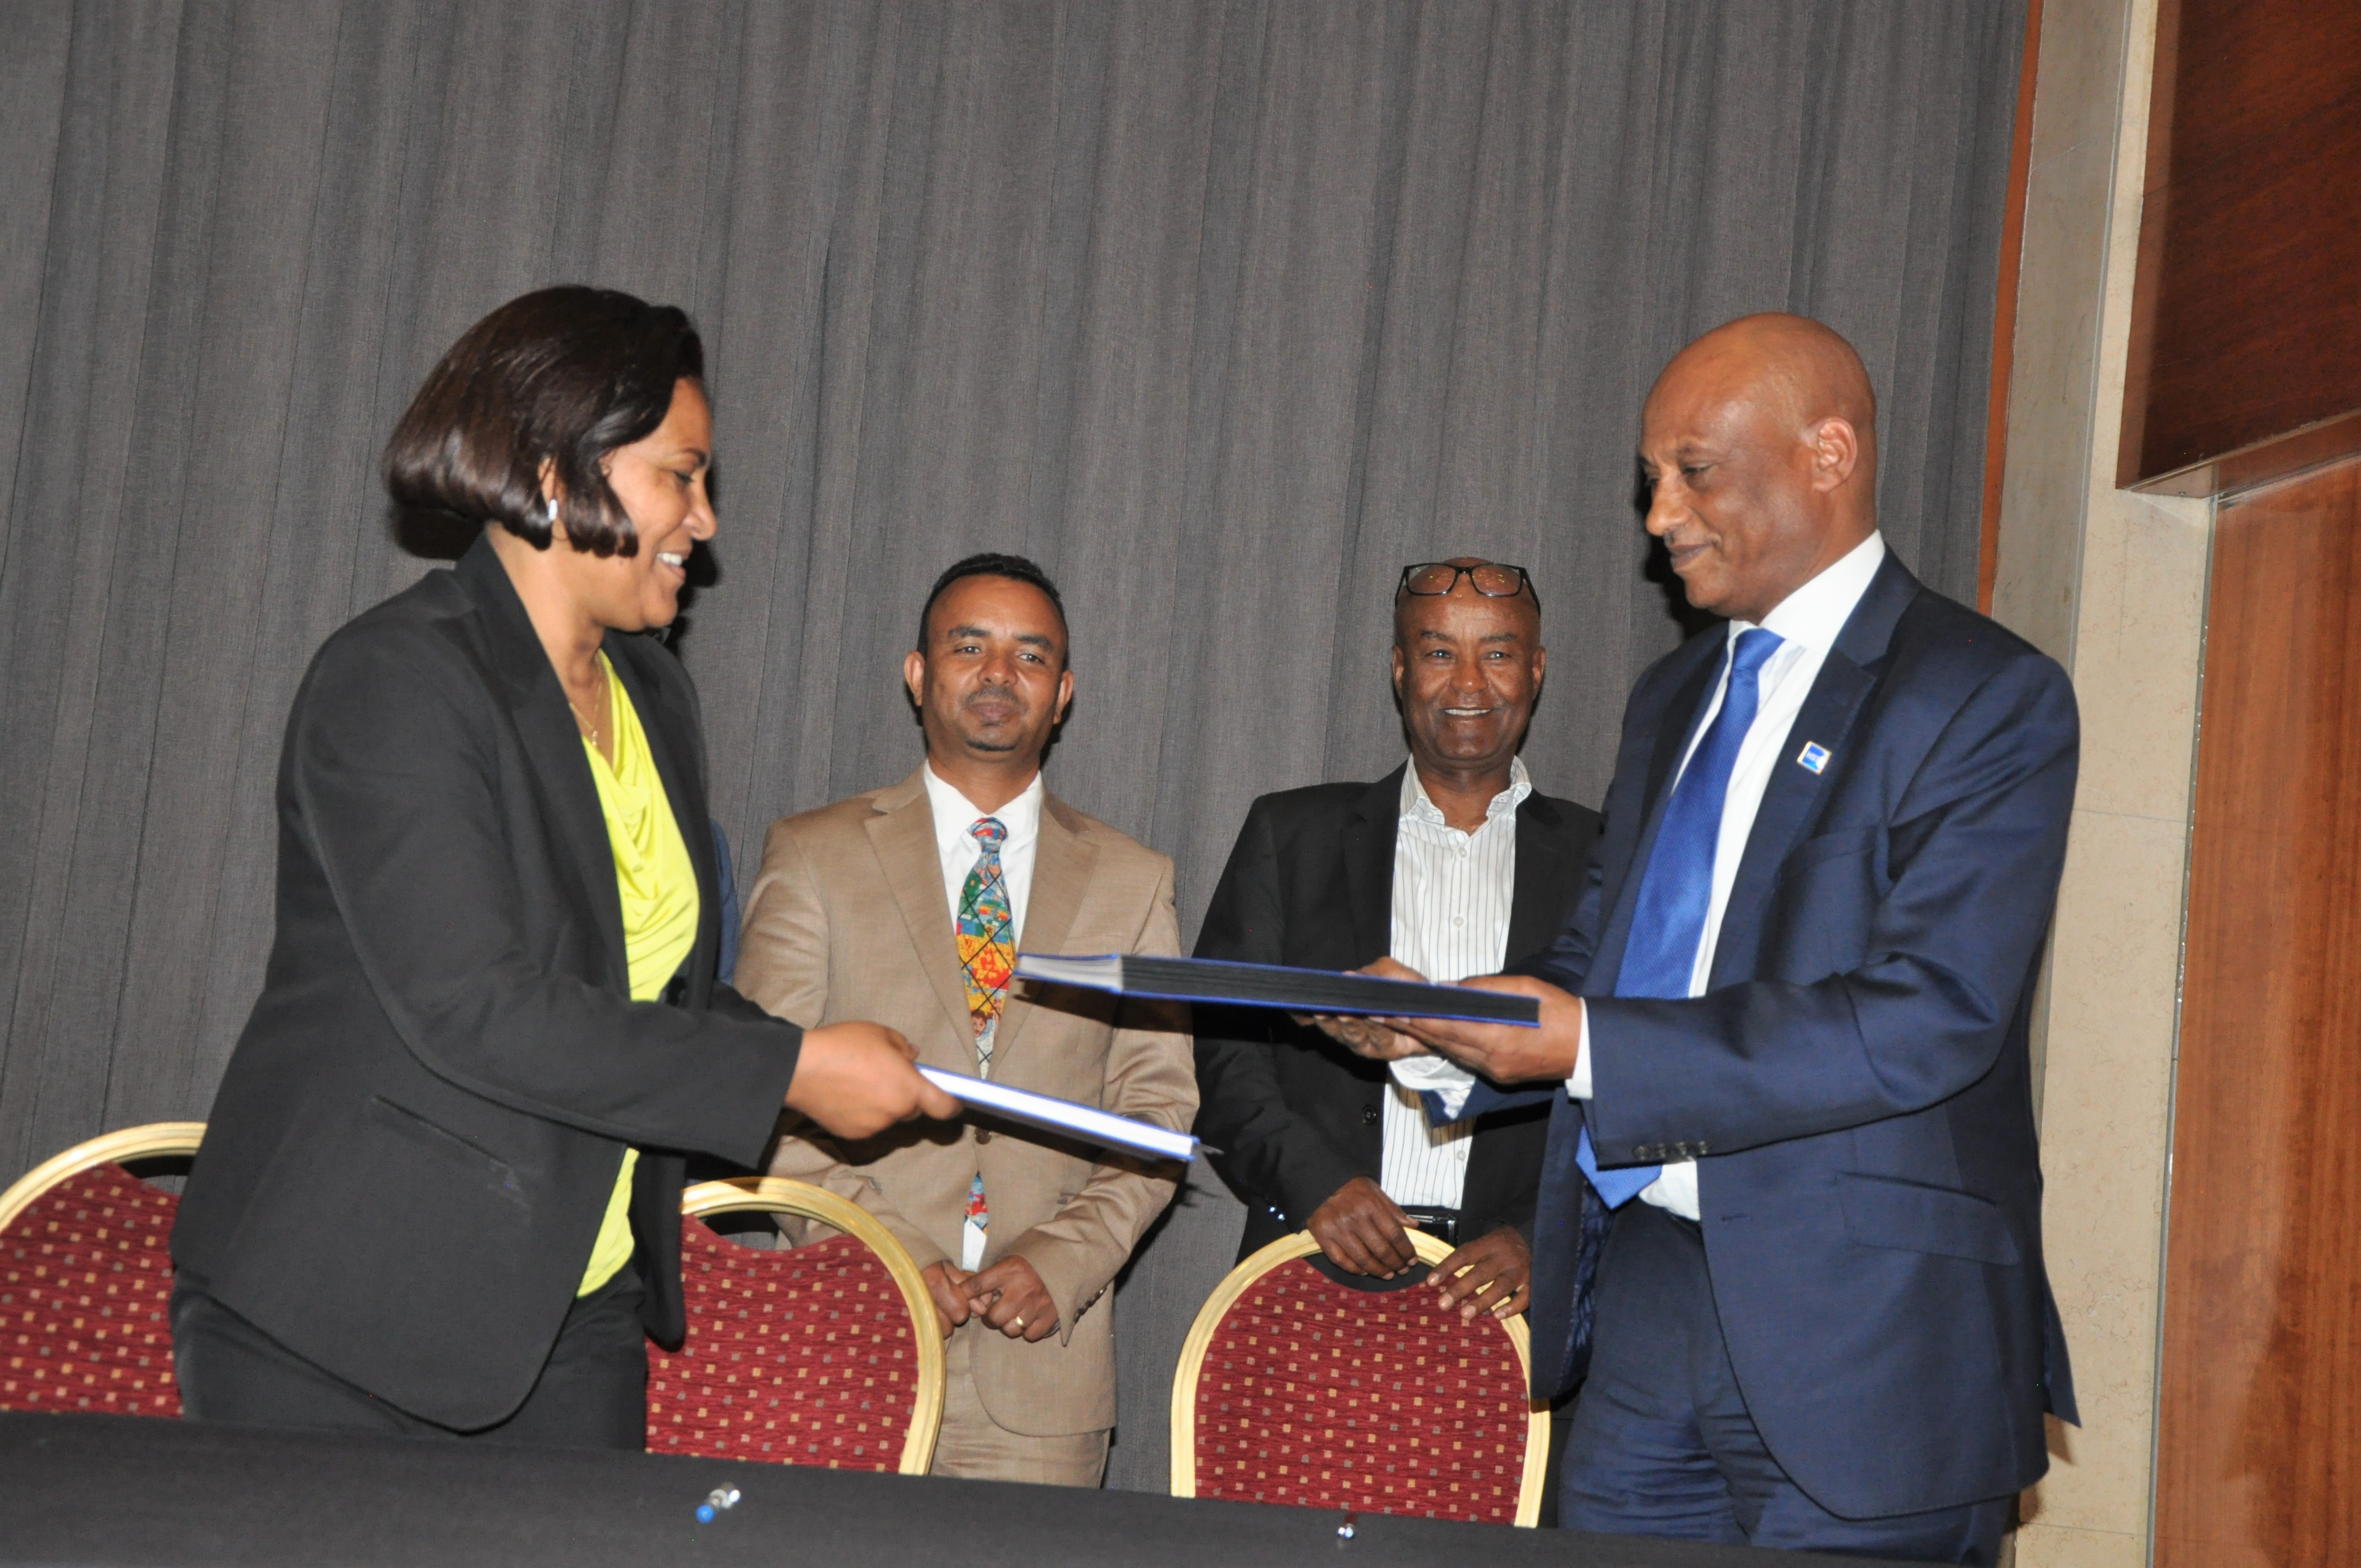 HST & EMI (Ethiopian Management Institute) signed on MoU